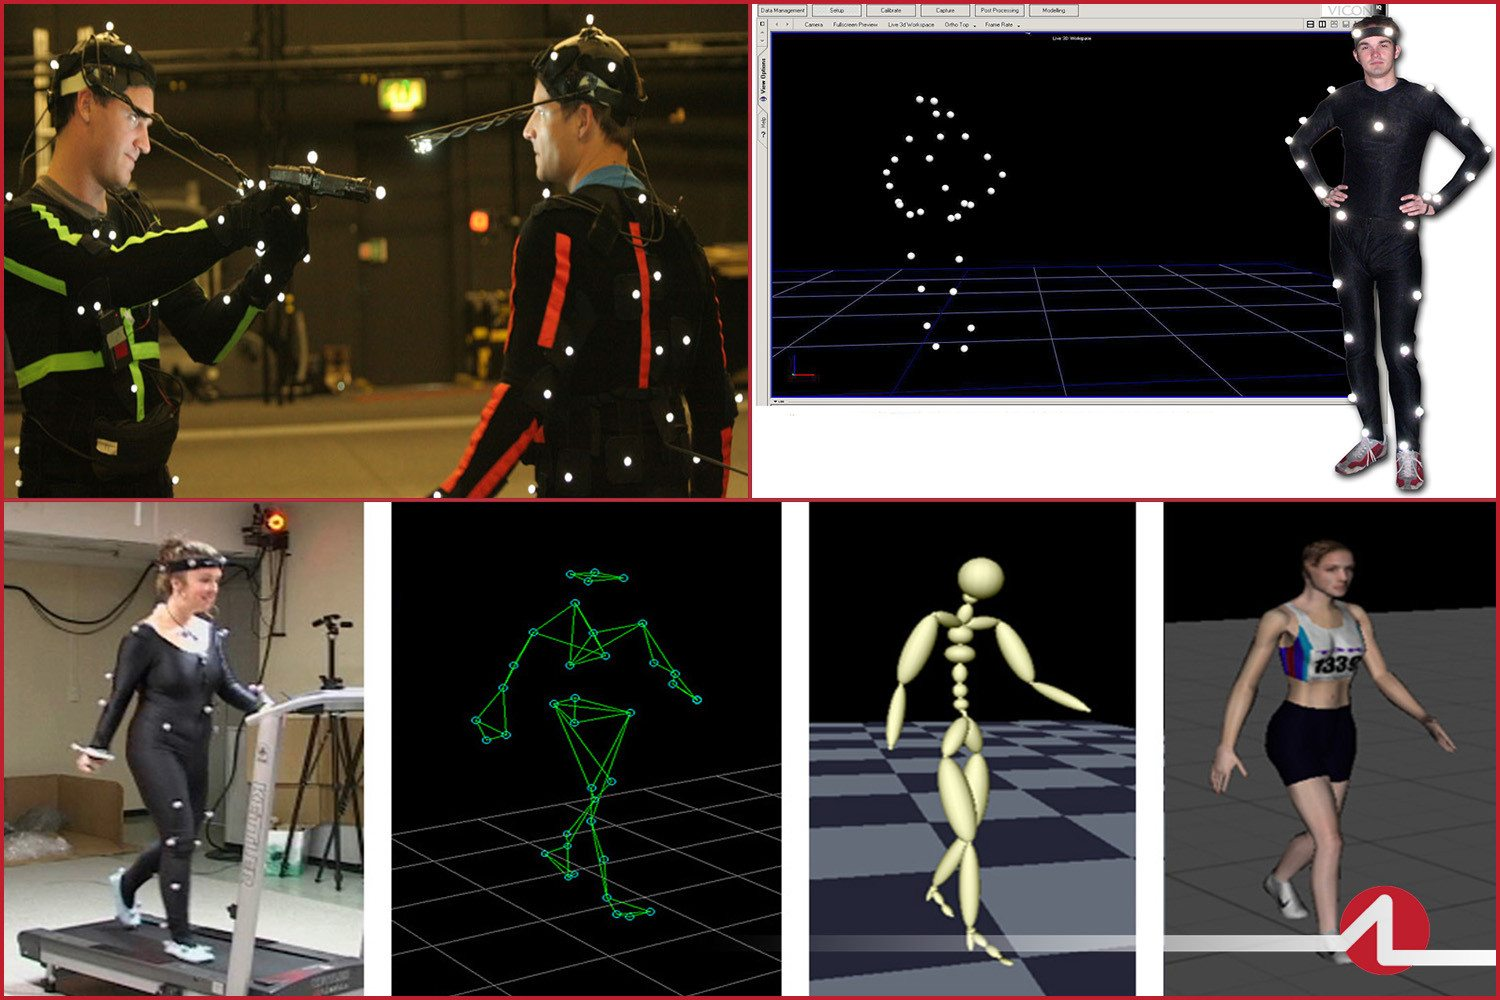 motion capture